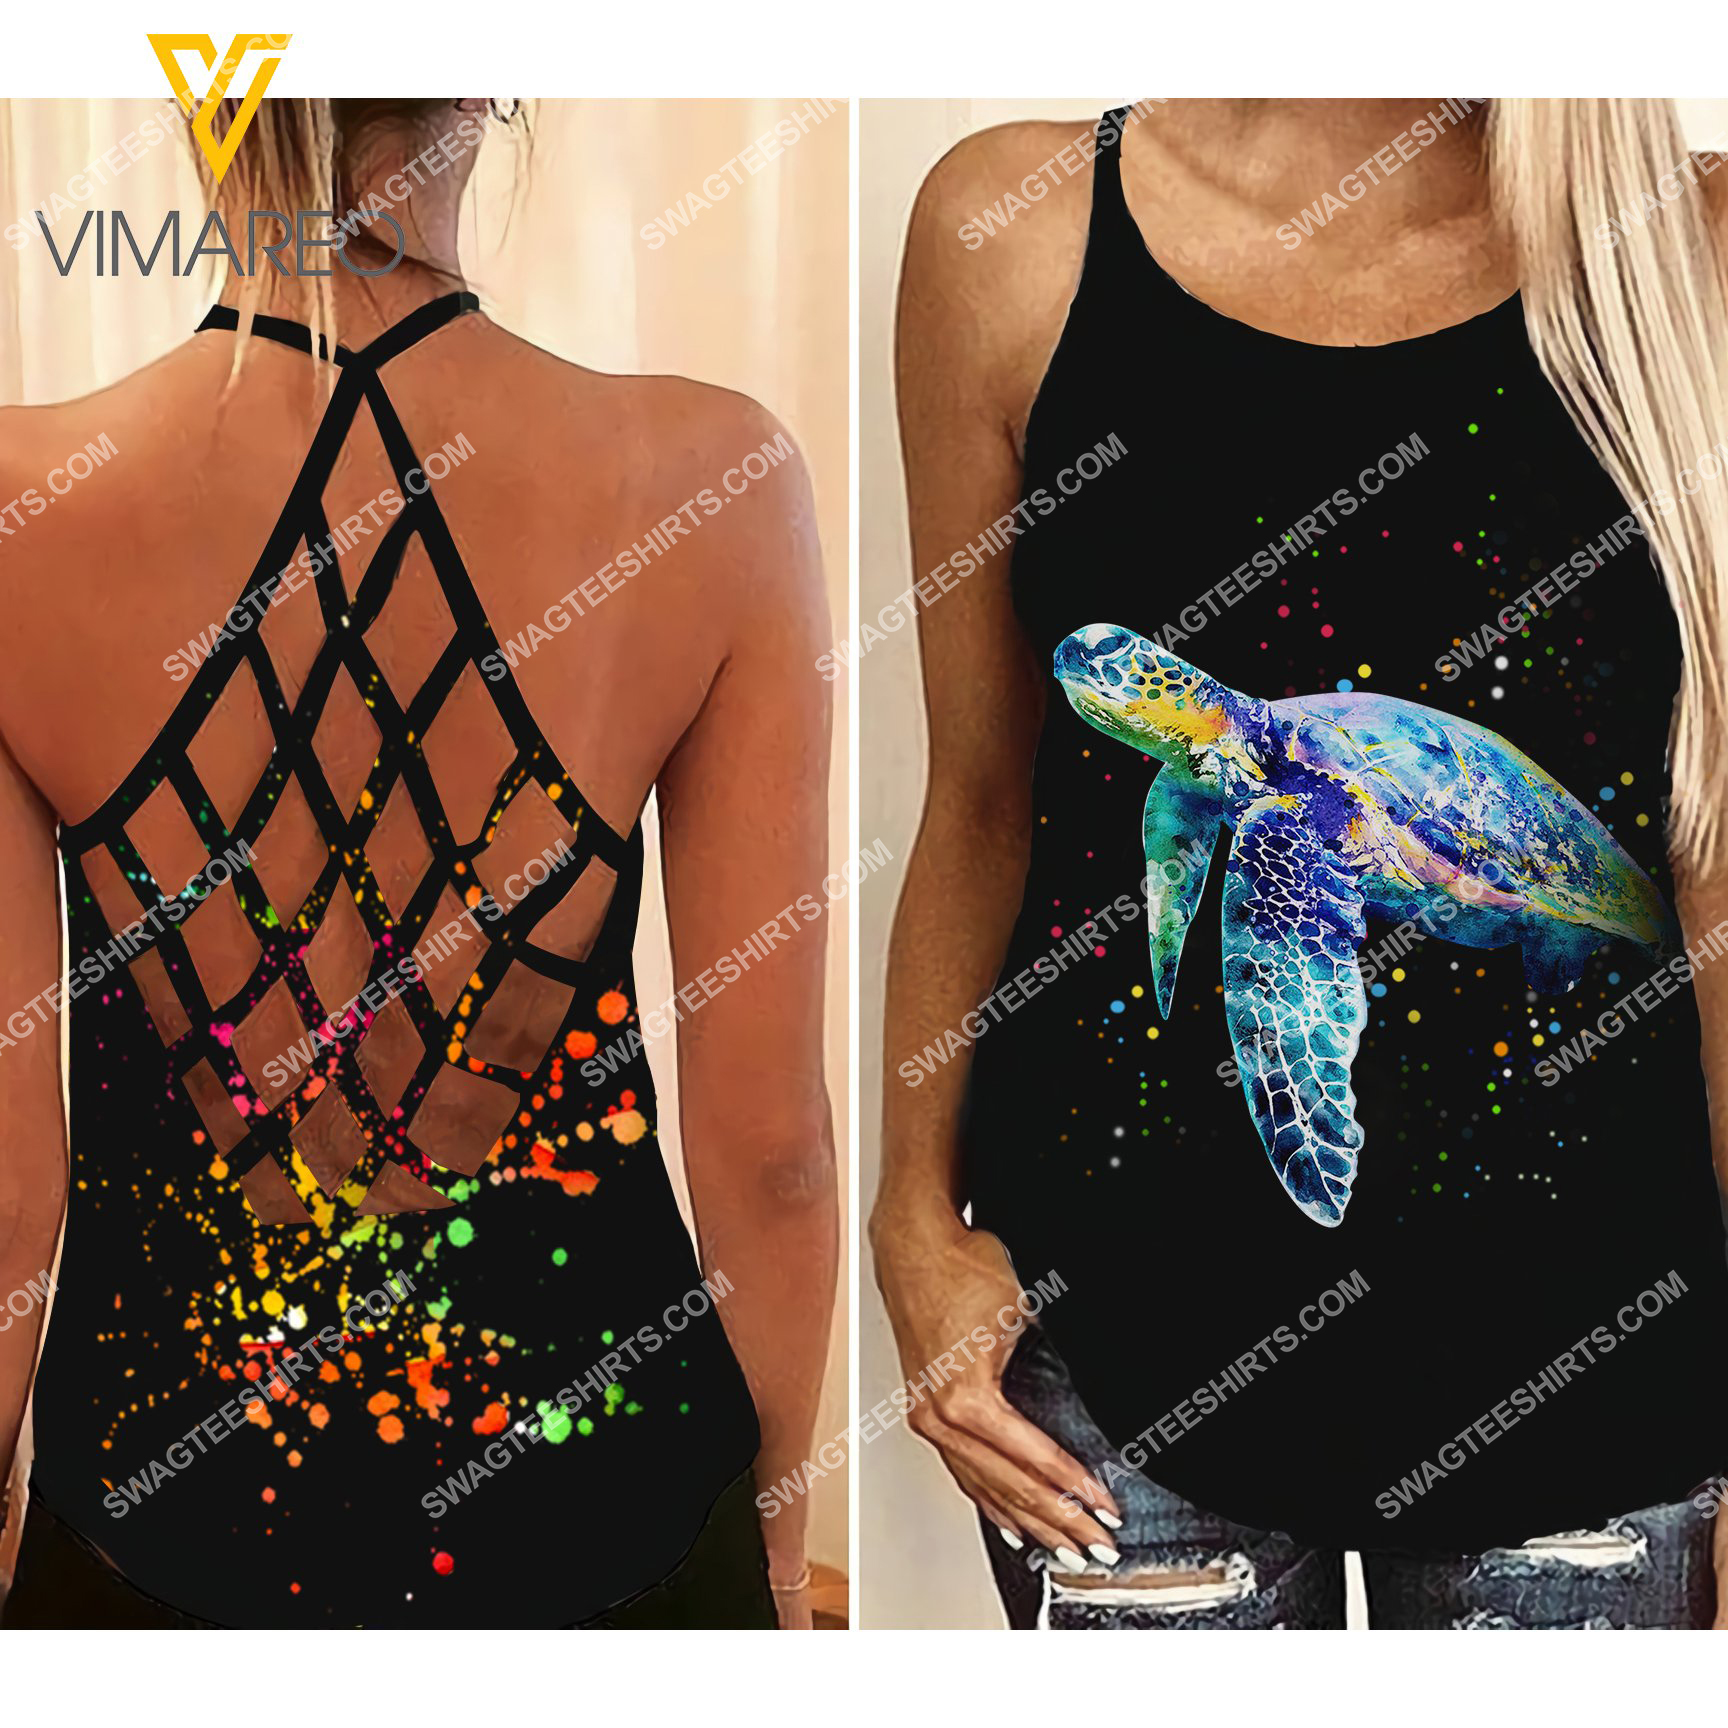 sea turtle colorful all over printed strappy back tank top 2 - Copy